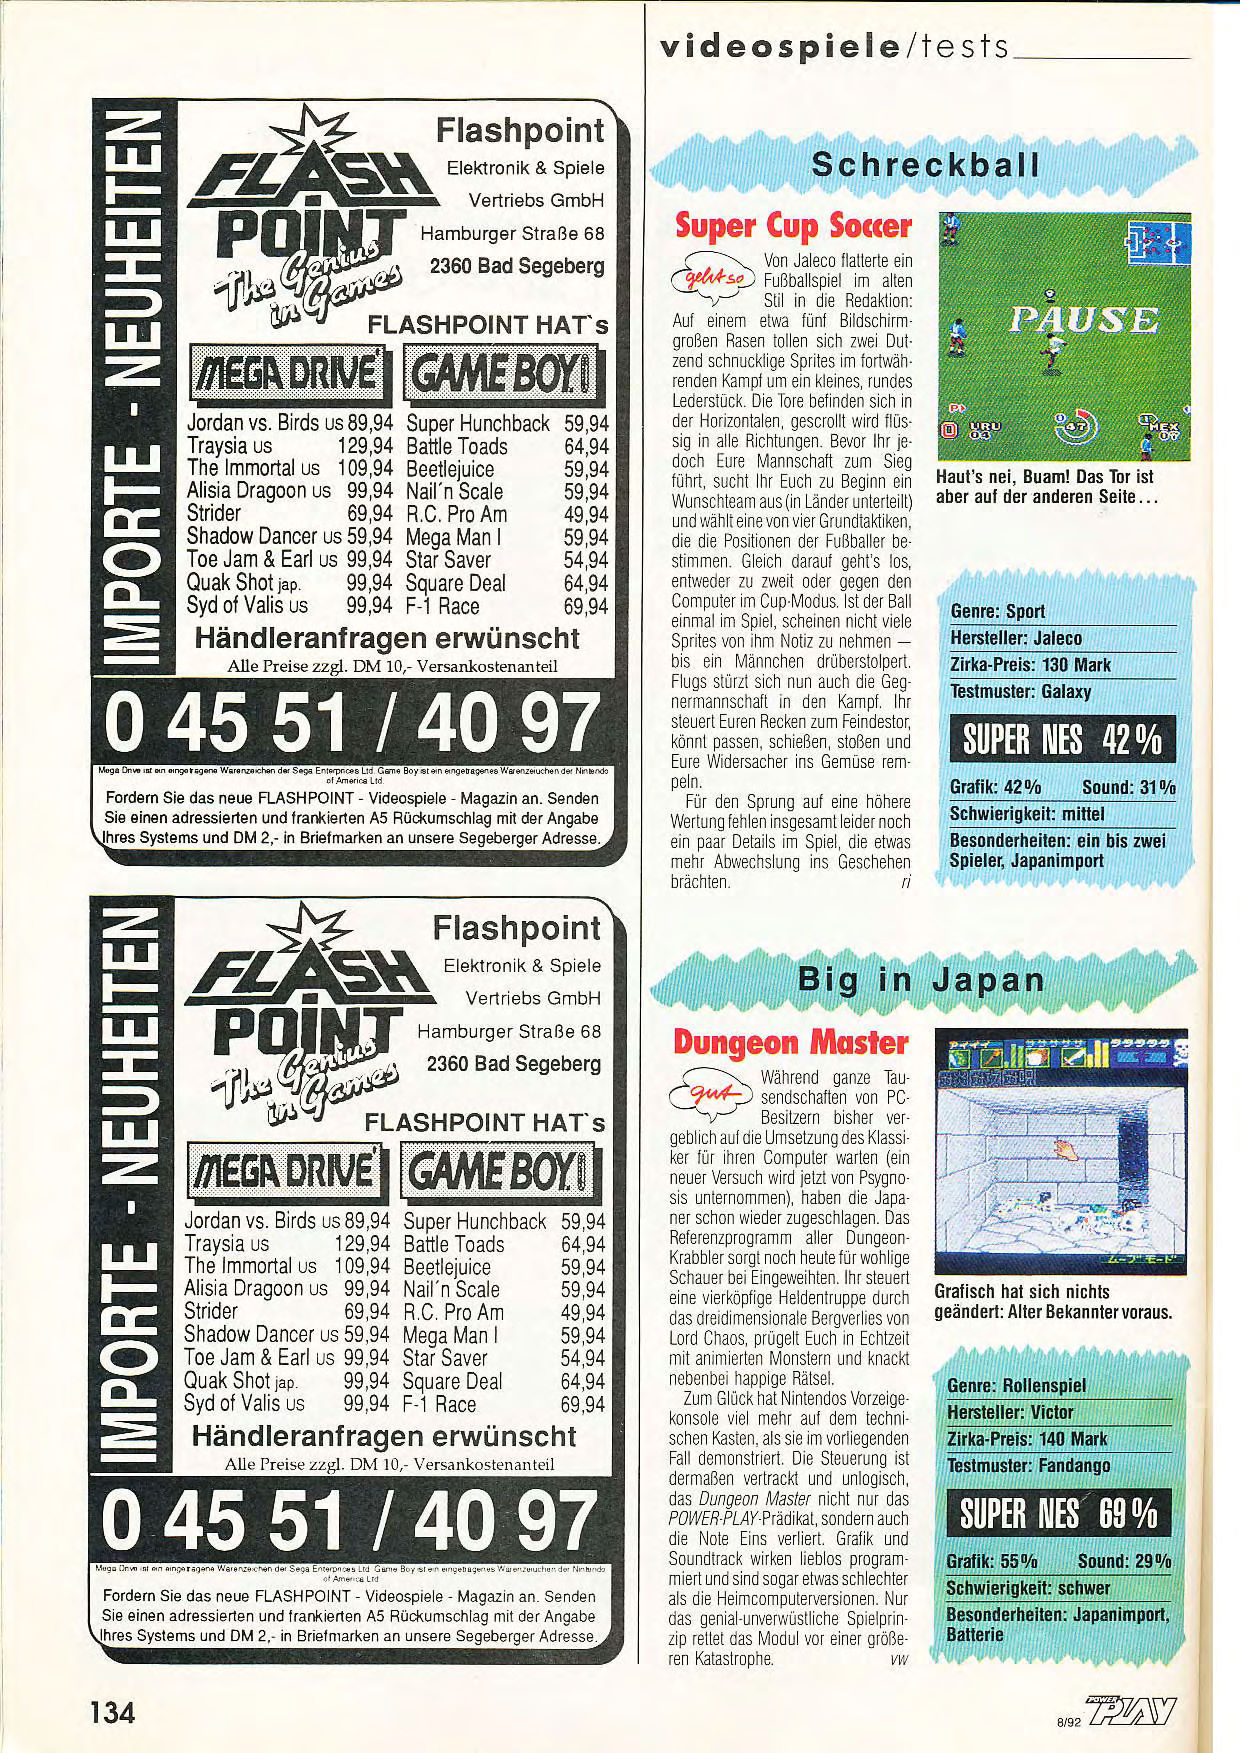 Dungeon Master for Super NES Review published in German magazine 'Power Play', August 1992, Page 134